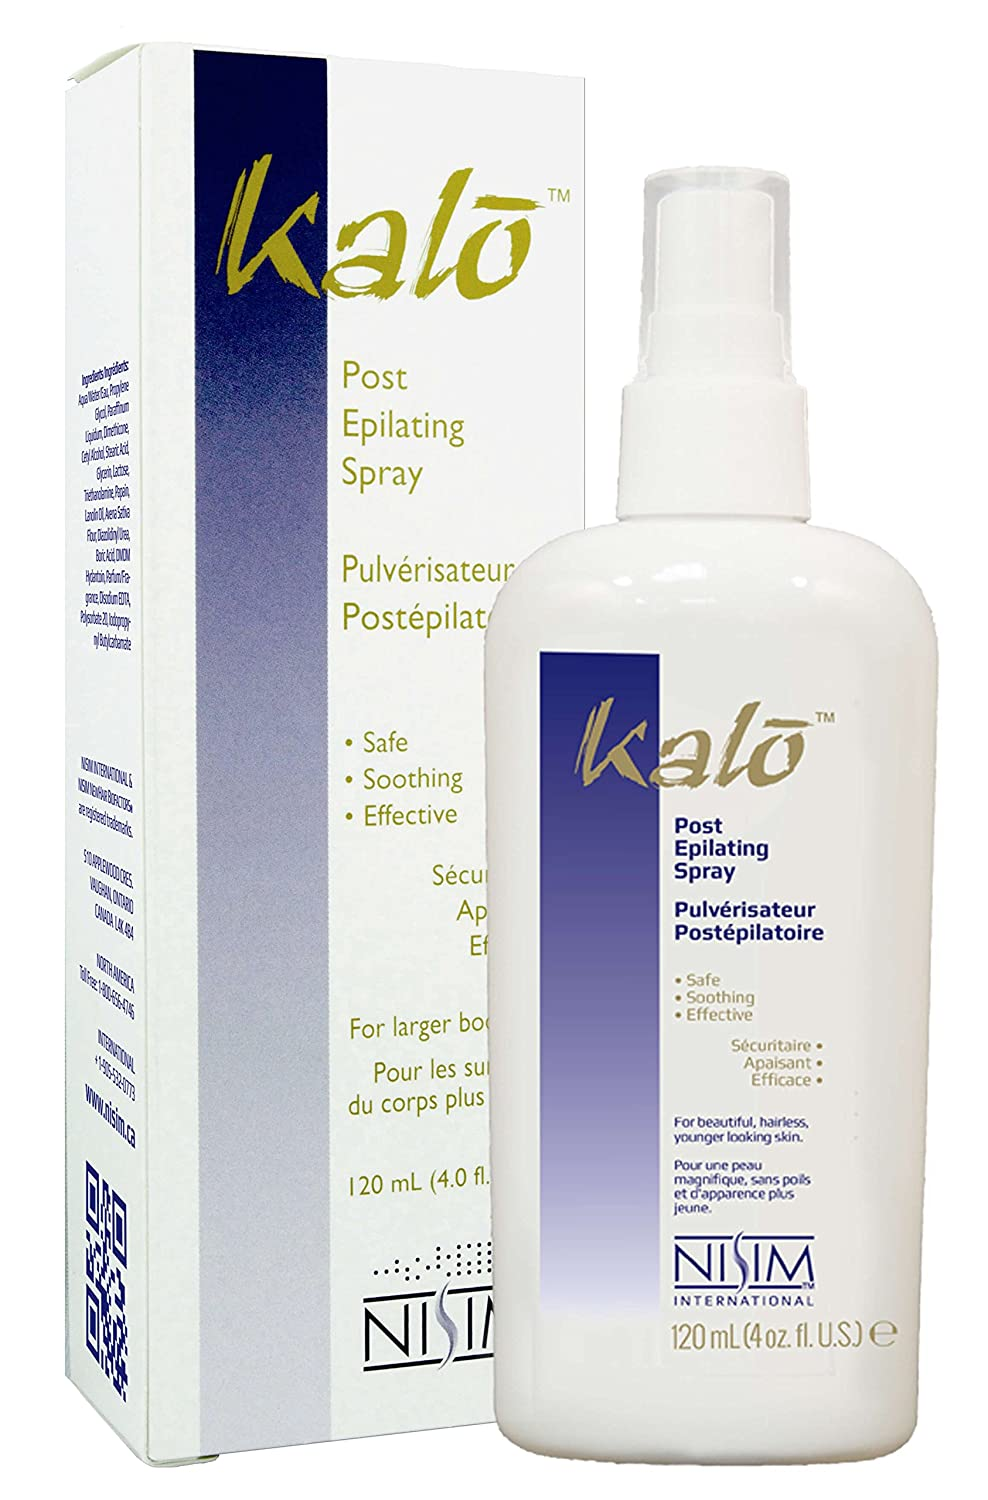 Kalo Post Epilating Spray (For Larger Body Areas) - 120ml/4oz Nisim SU2500